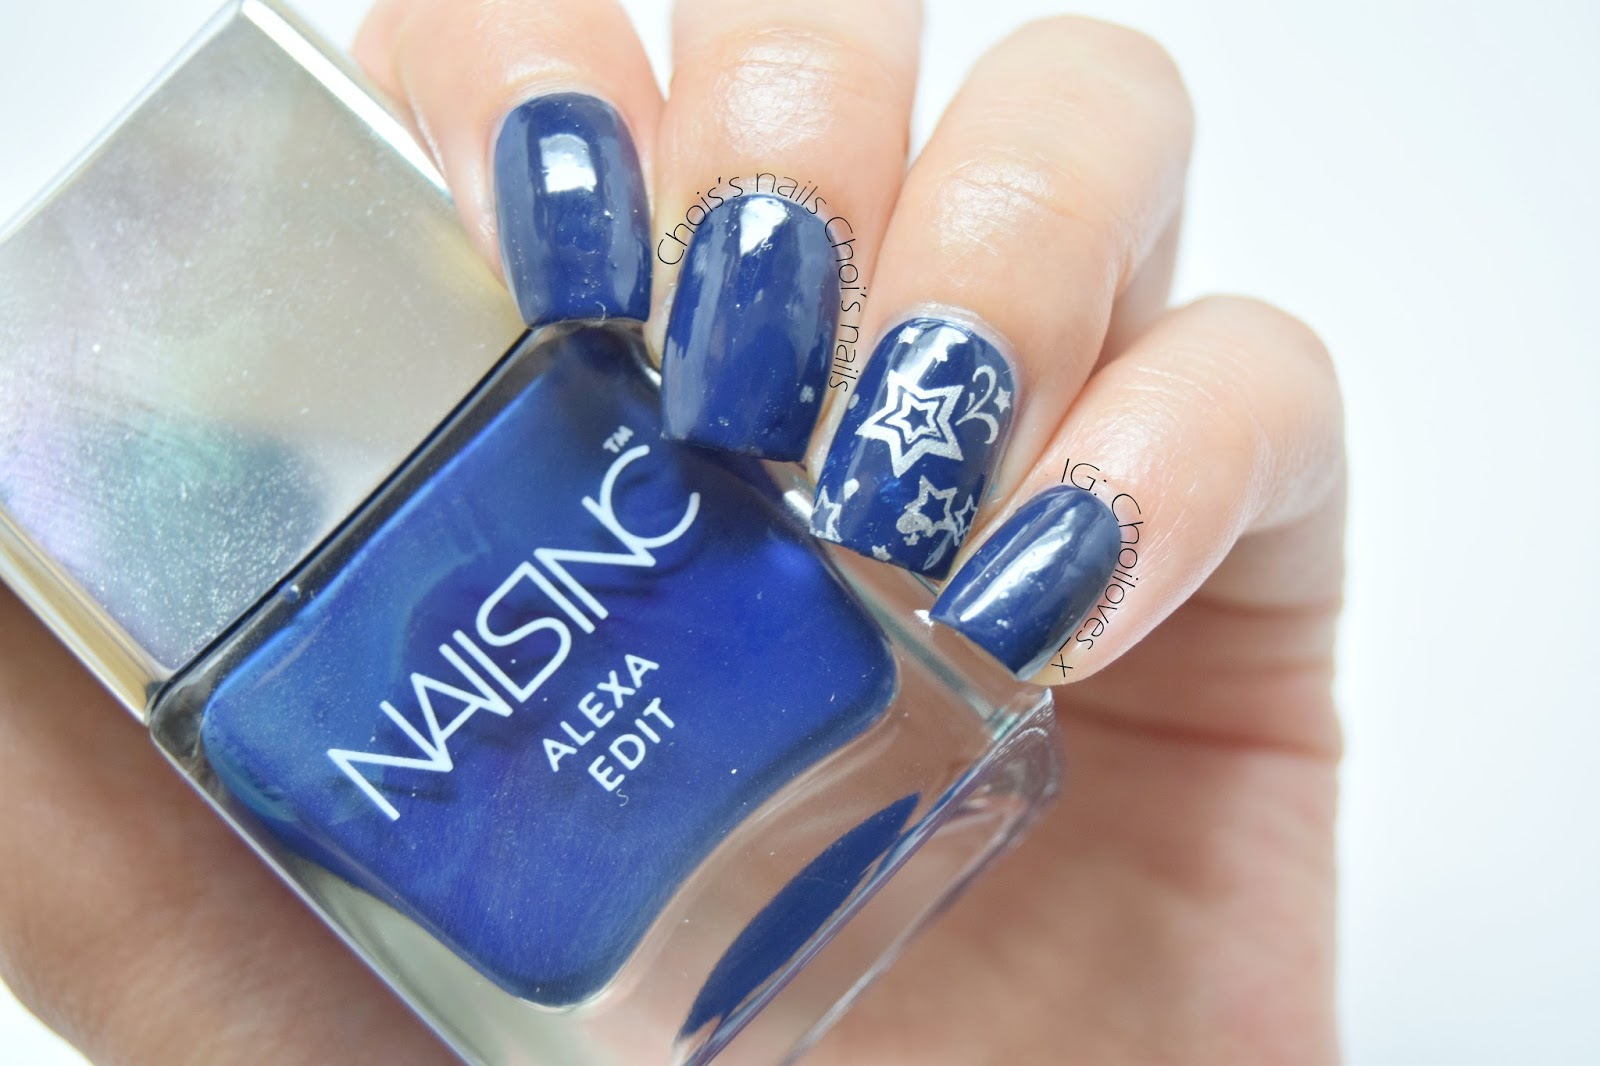 Nails Inc\'s Night Sky - Choi\'s nails